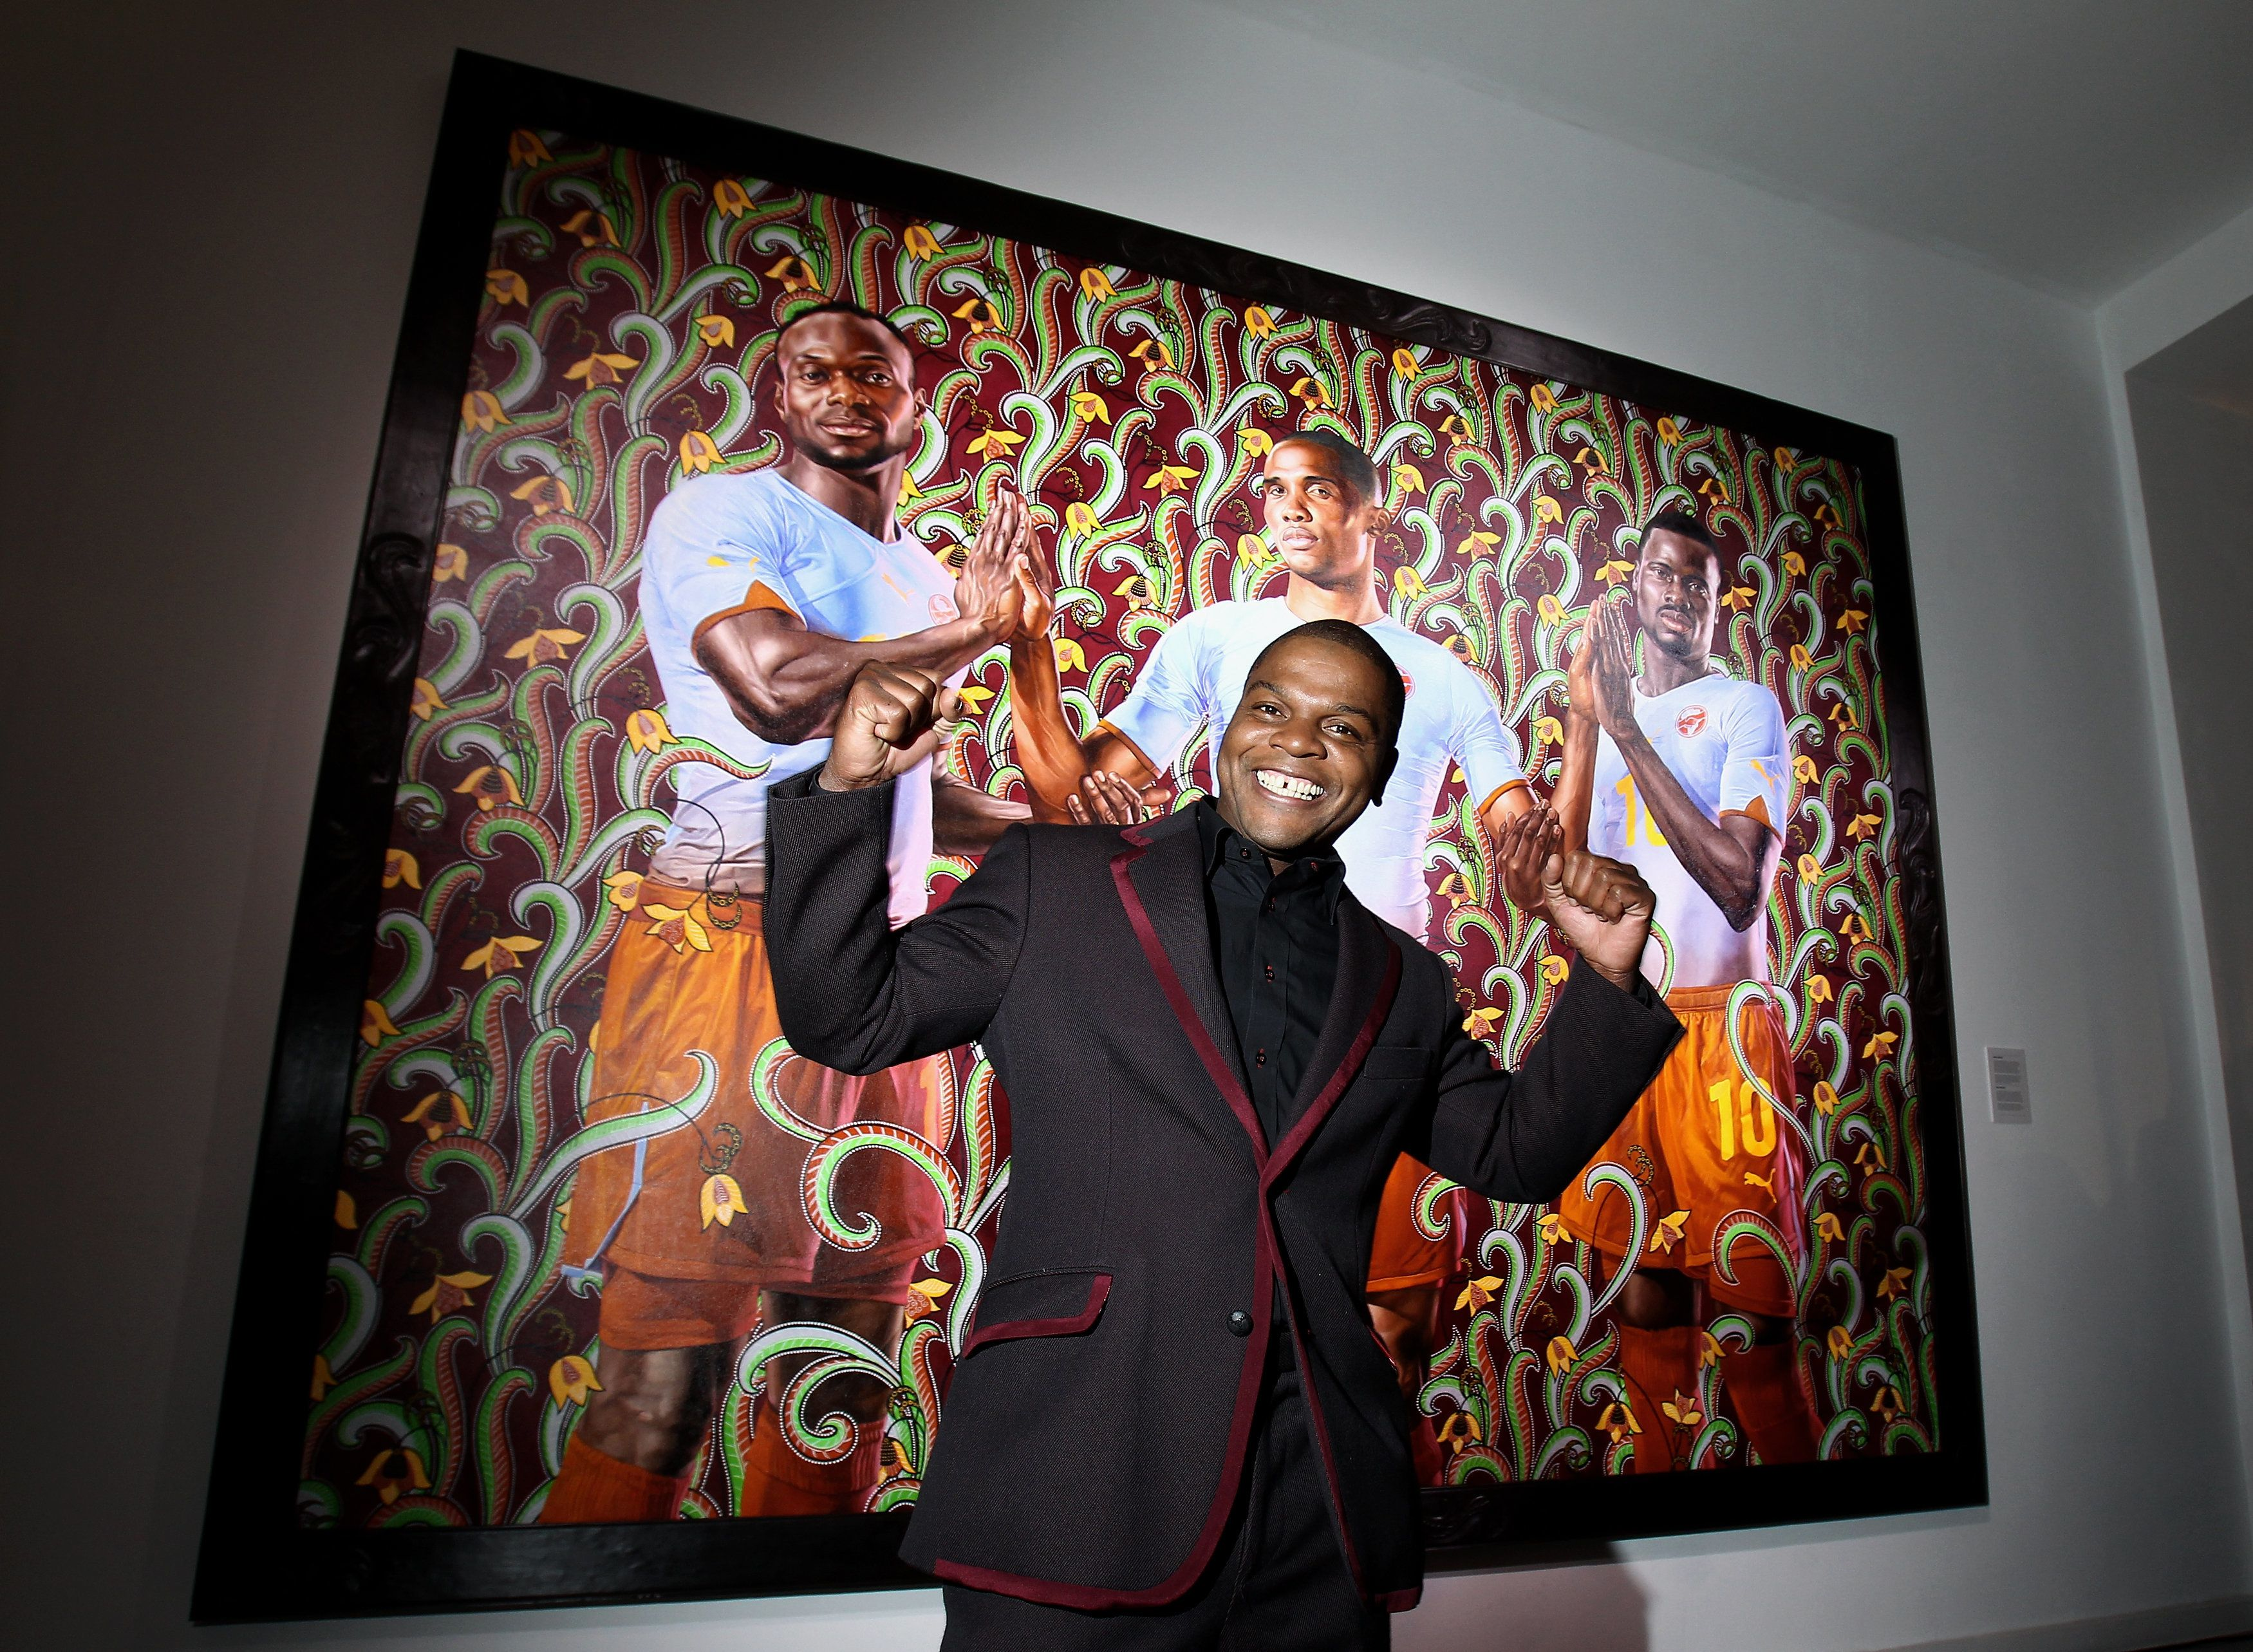 BERLIN - JANUARY 20:  US artist Kehinde Wiley stands in front of his painting during the PUMA - Kehinde Wiley vernissage on January 20, 2010 in Berlin, Germany.  (Photo by Andreas Rentz/Getty Images for PUMA)